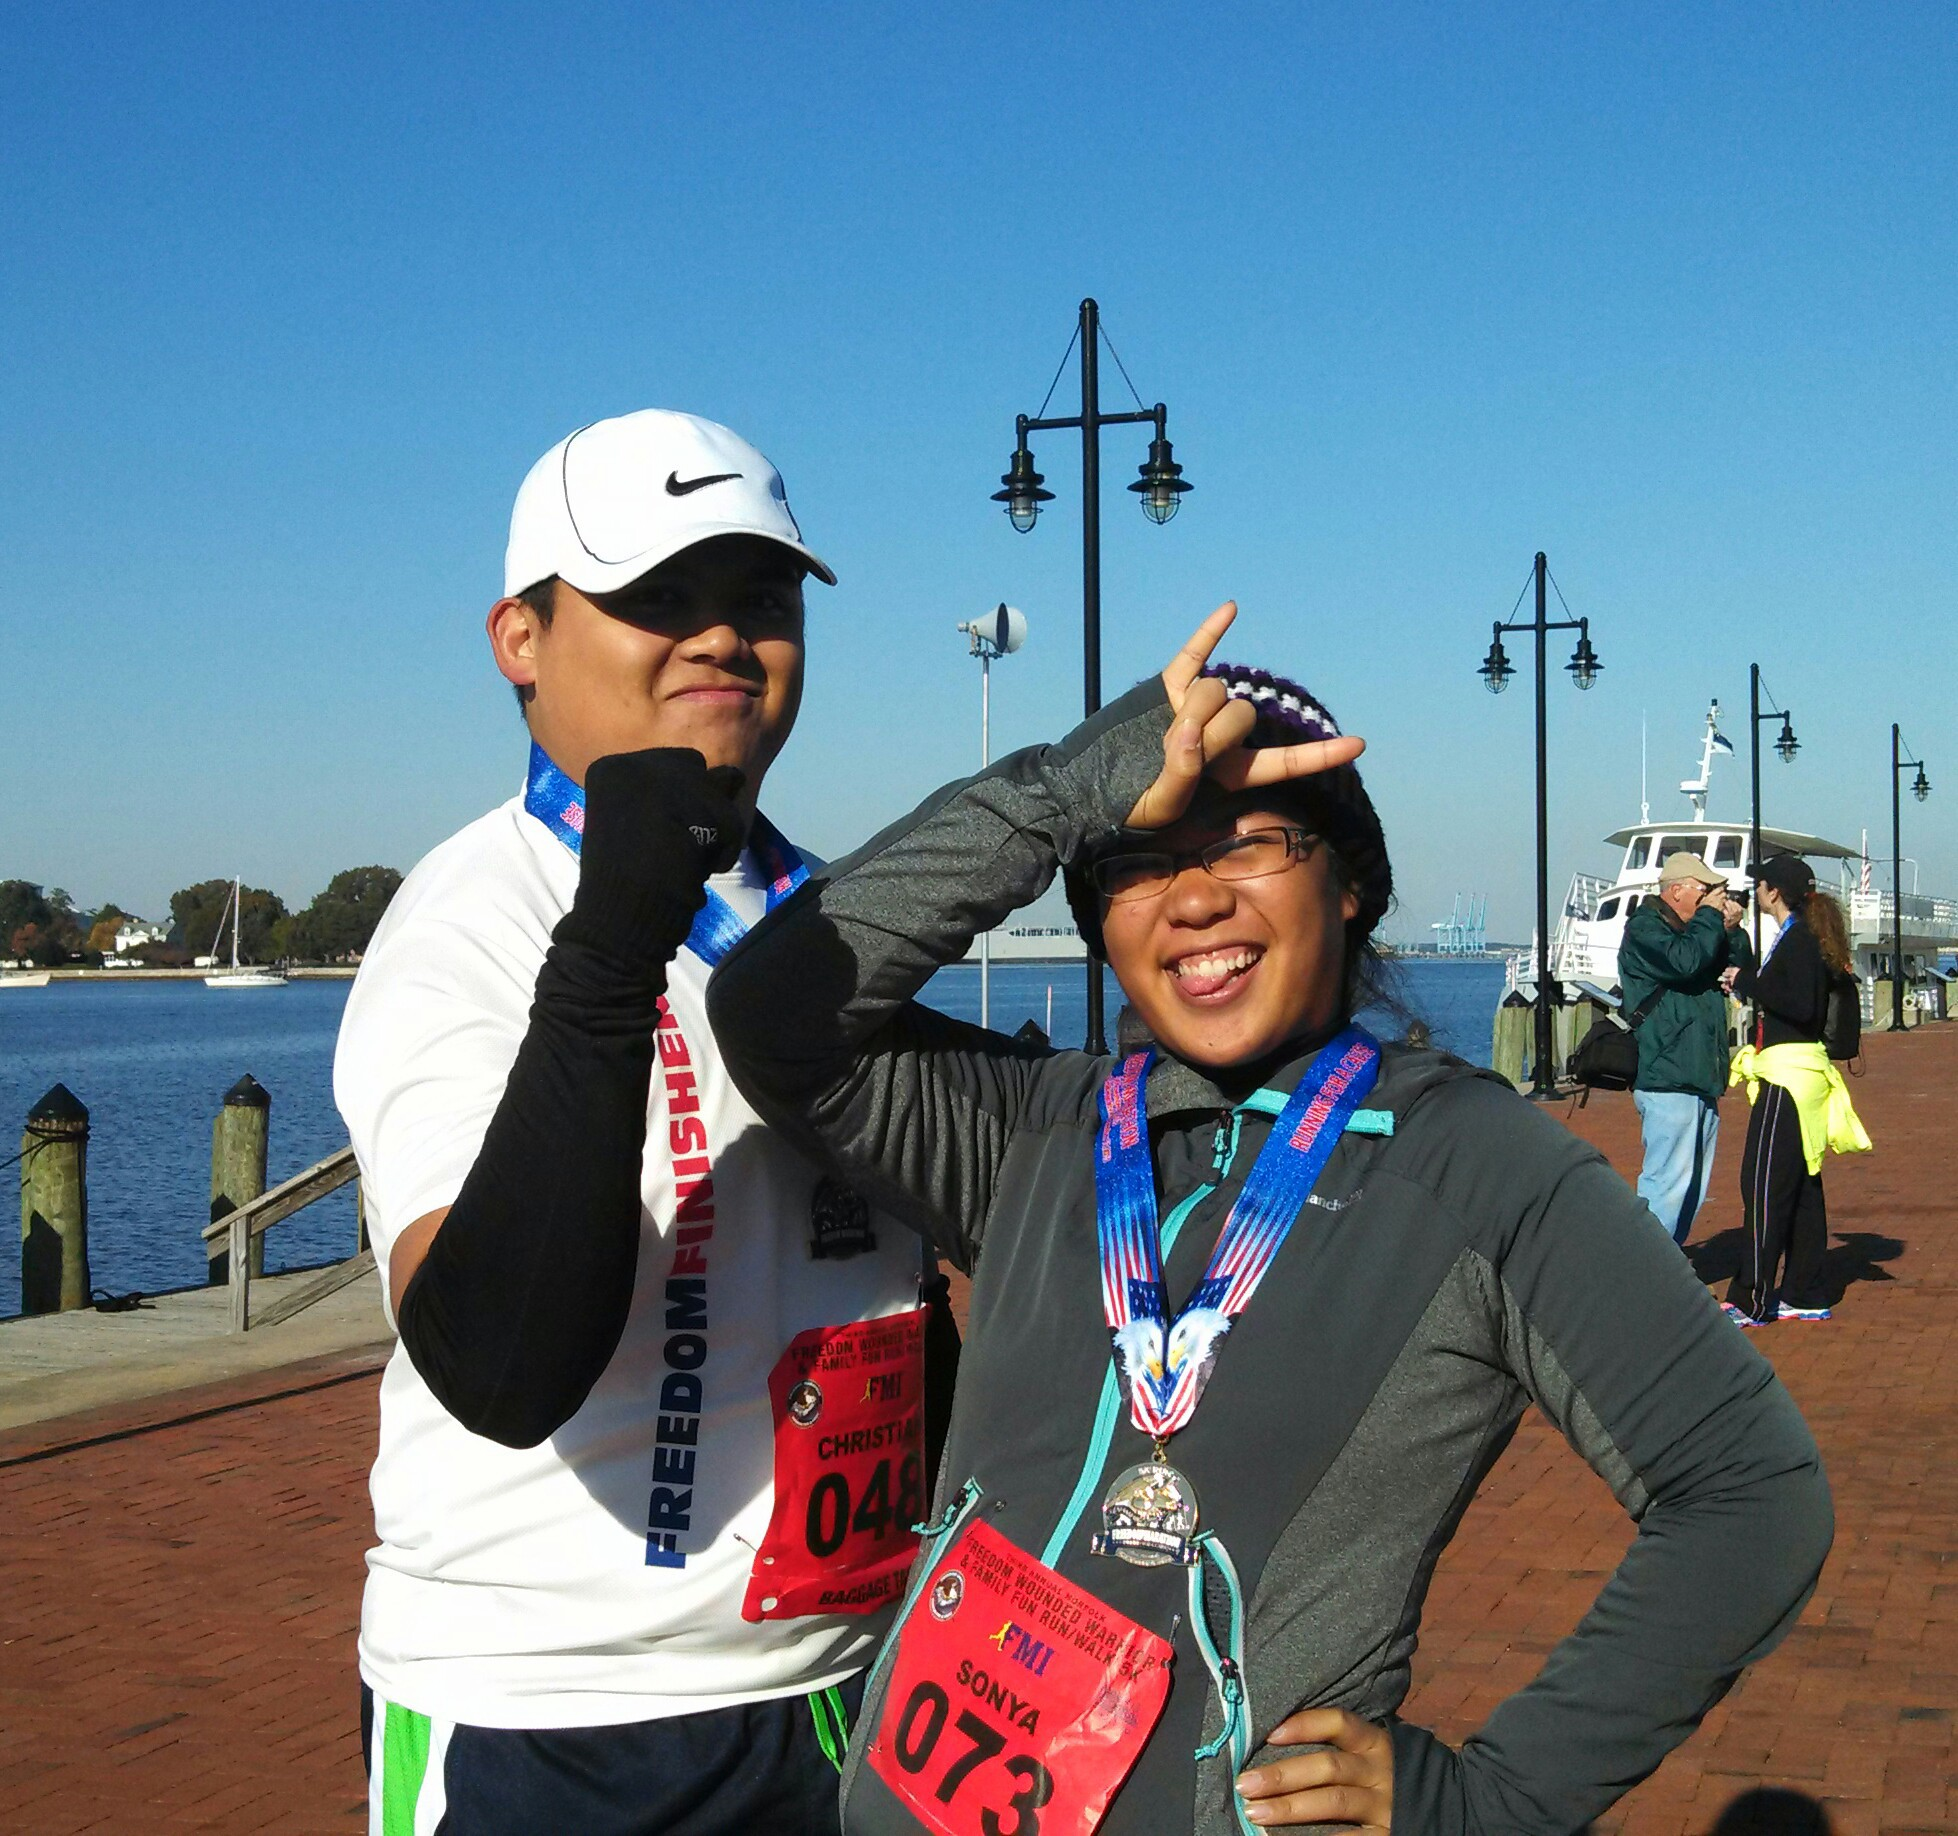 Finished with my 5K in Norfolk with my boyfriend on my side. Finished in 41 minutes without stopping.